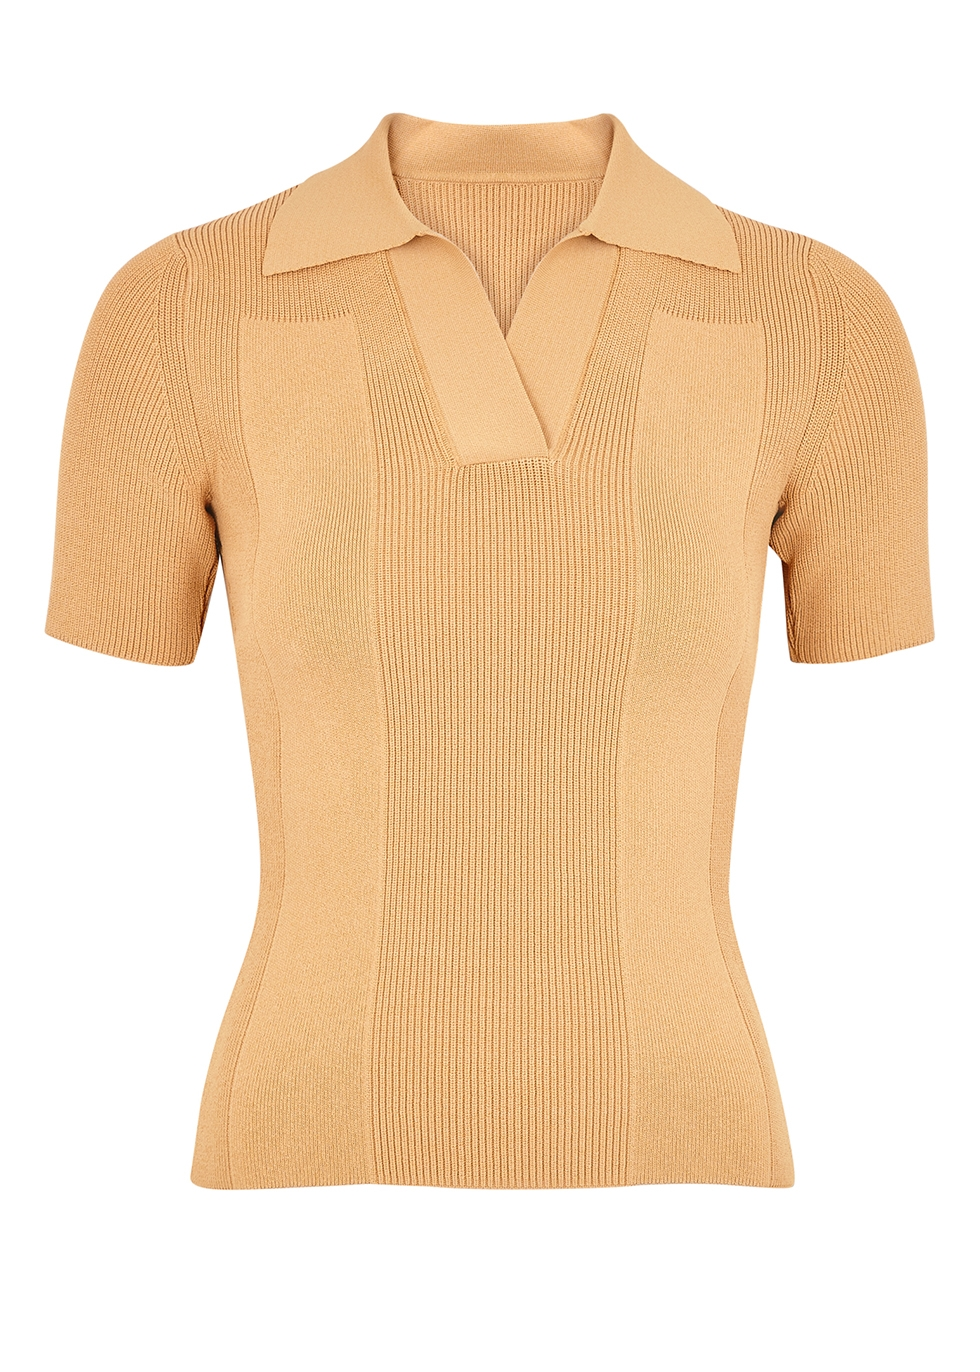 Jacquemus LA MAILLE POLO SAND STRETCH-KNIT TOP